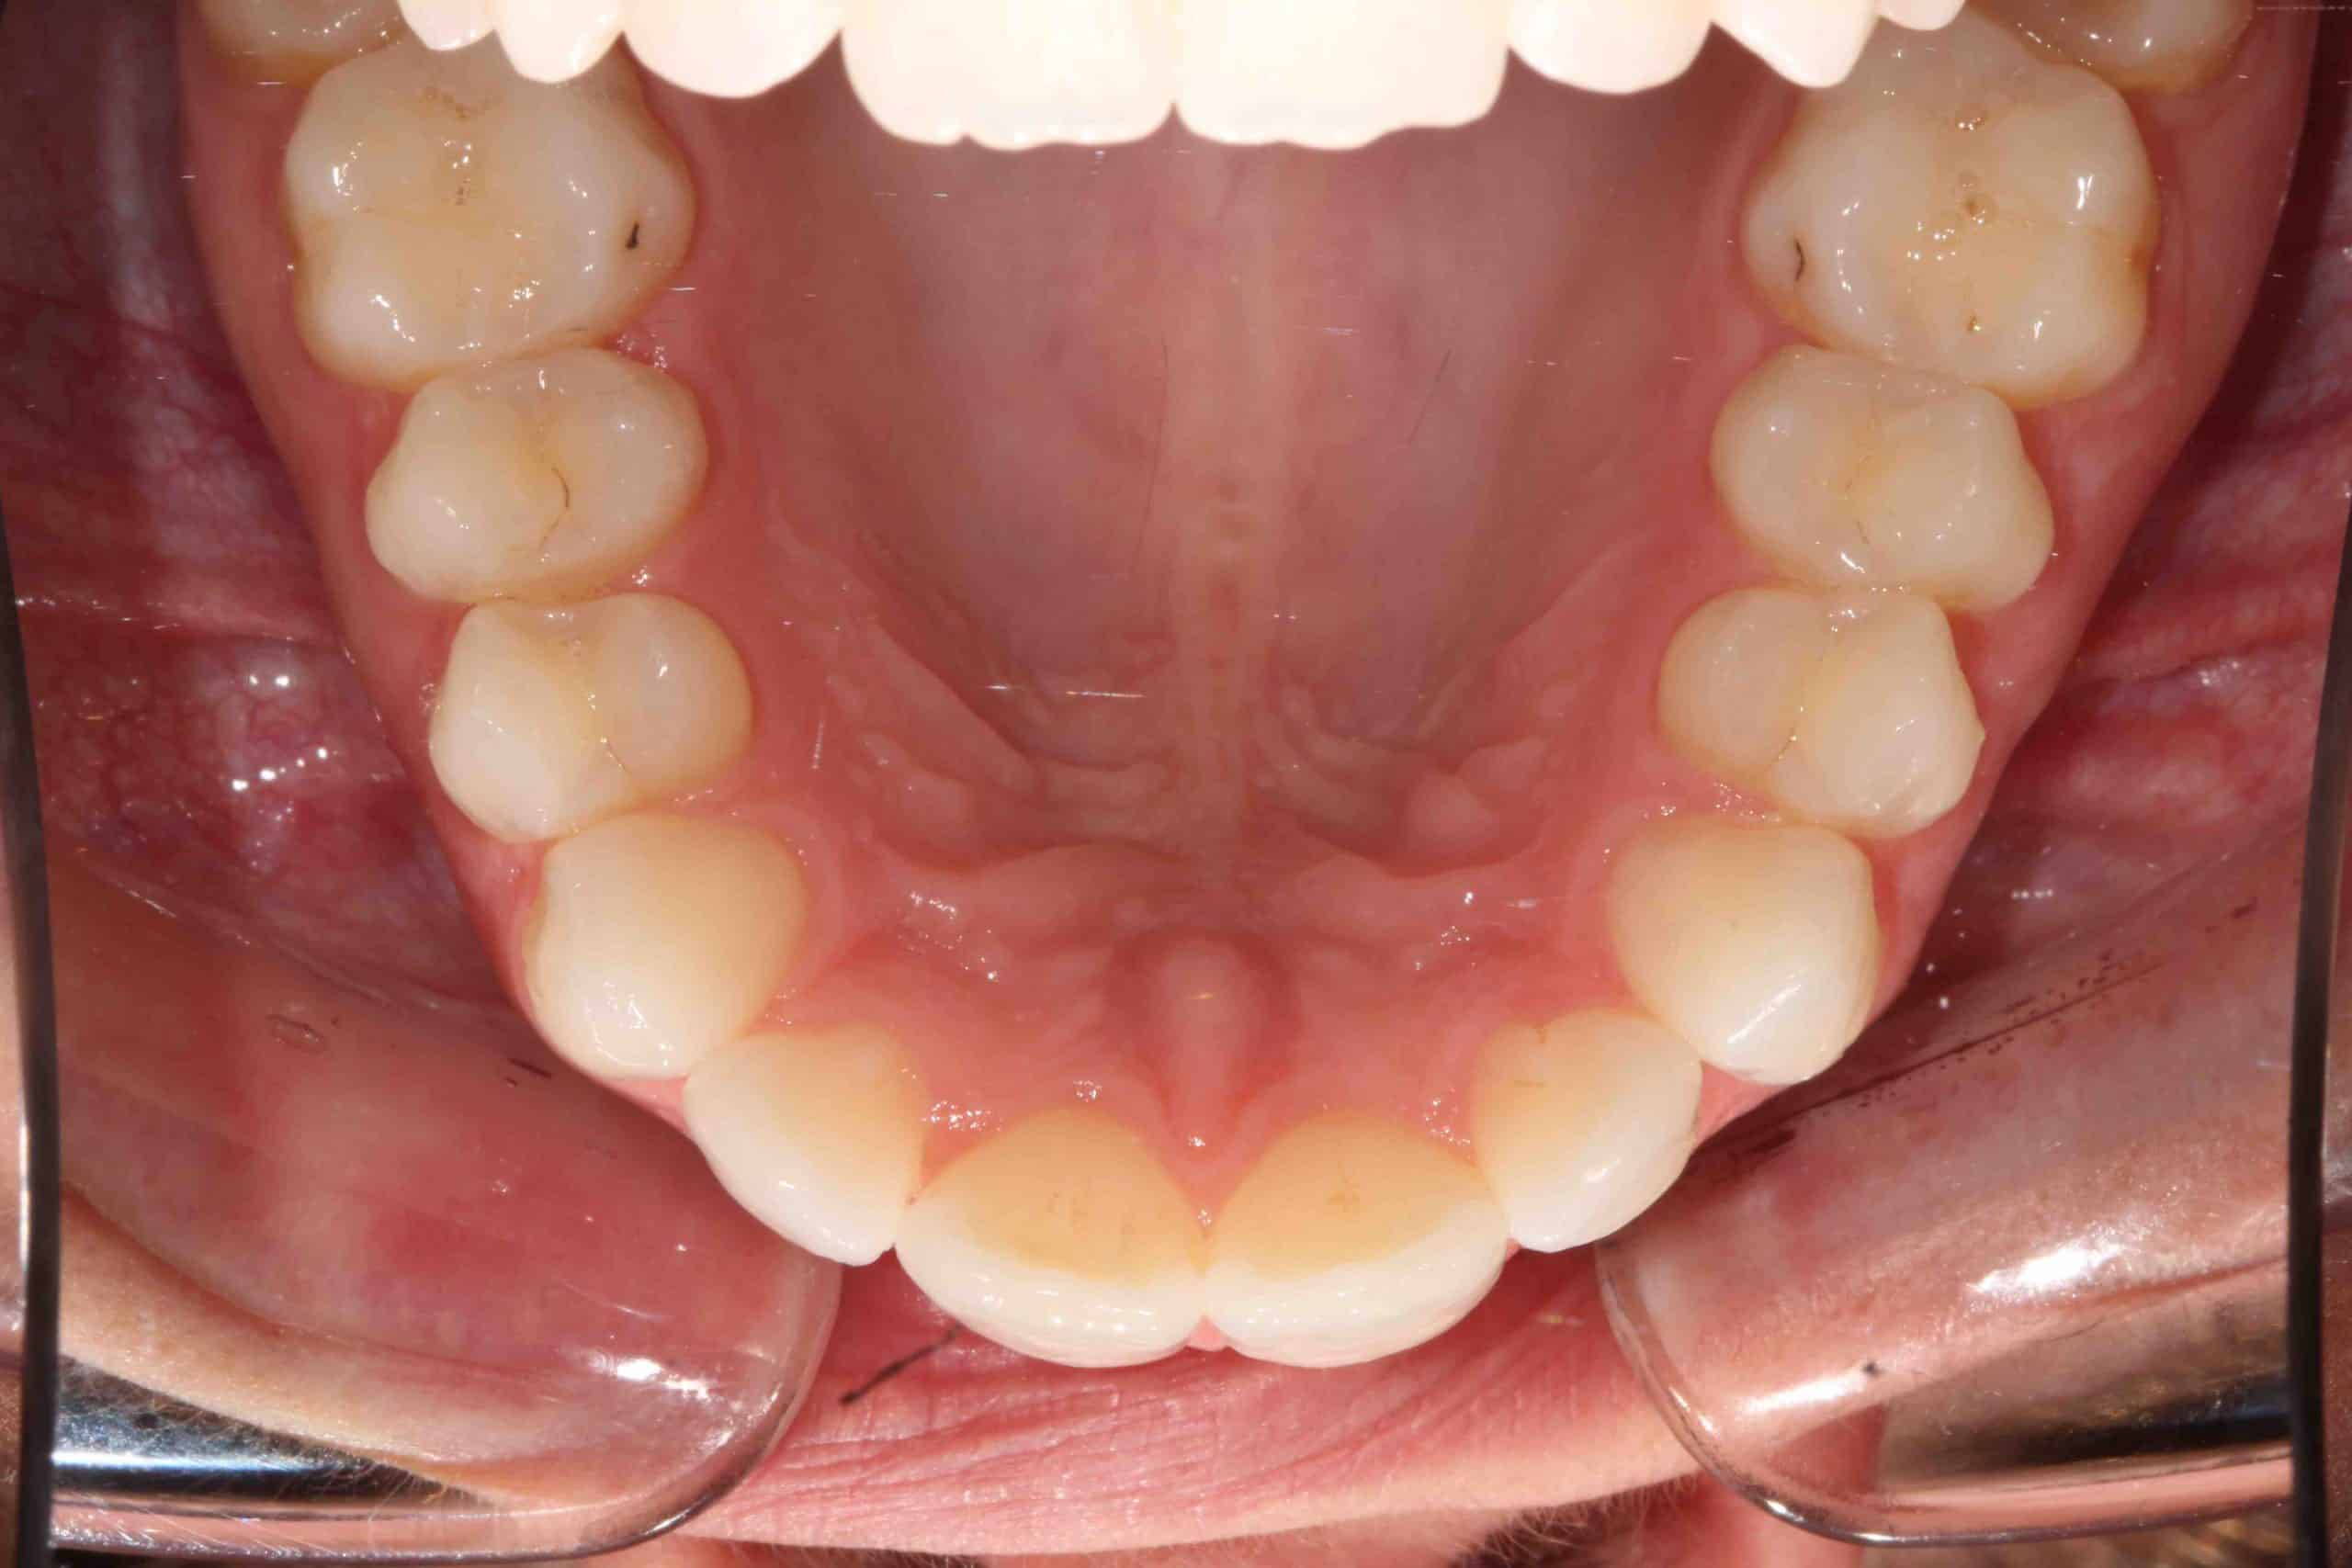 Invisalign After Treatment 3